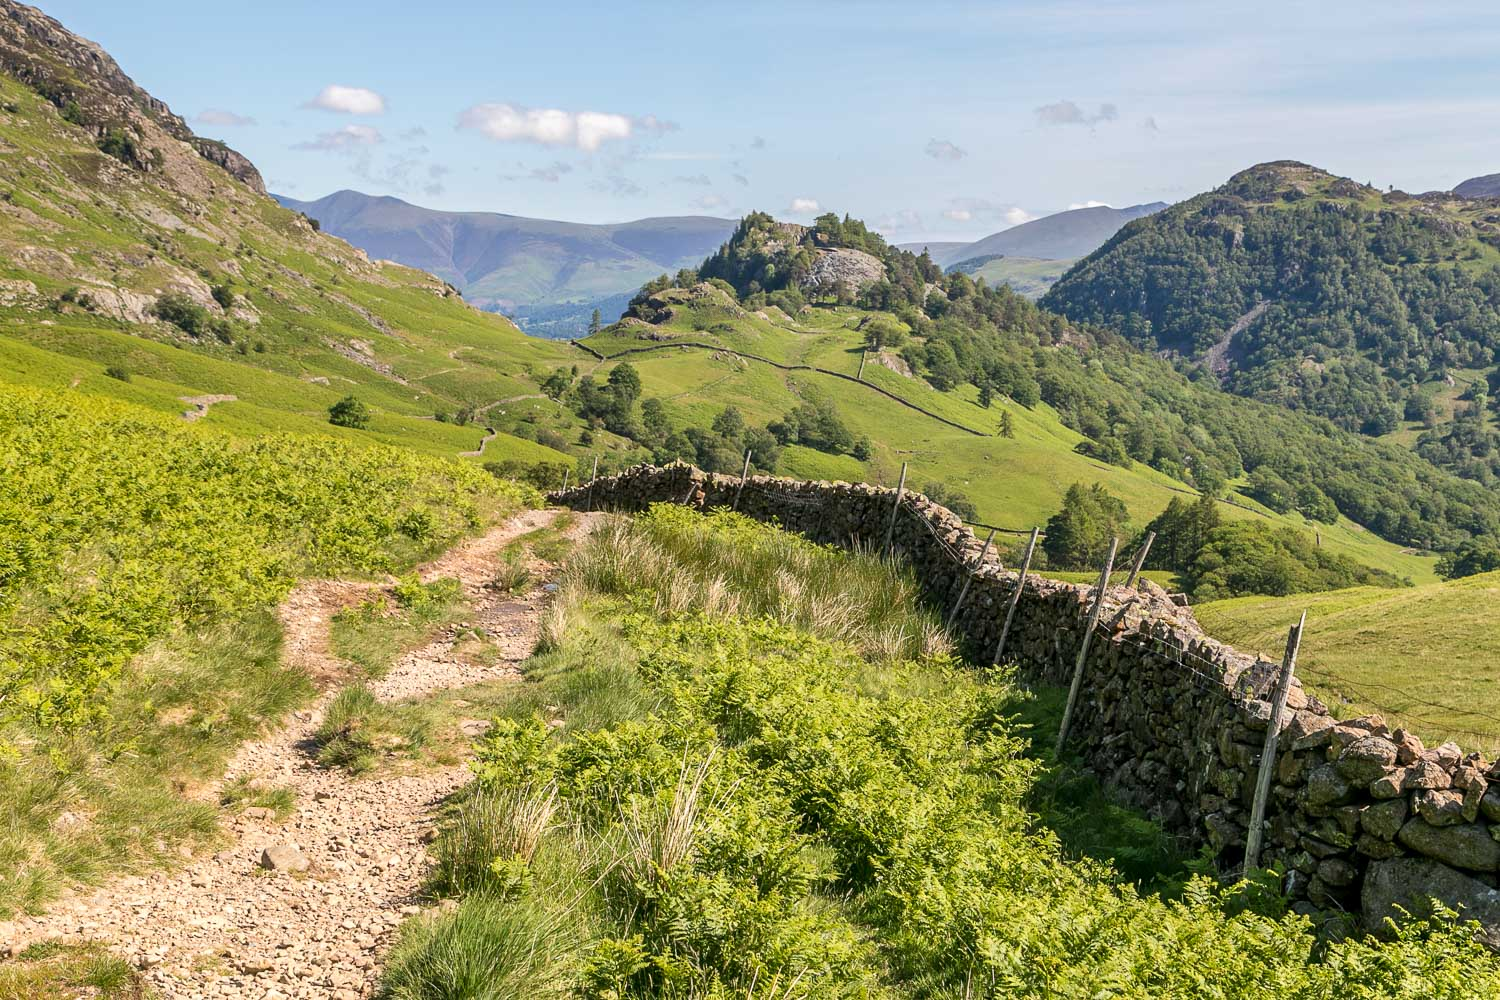 Castle Crag, King's How, Jaws of Borrowdale